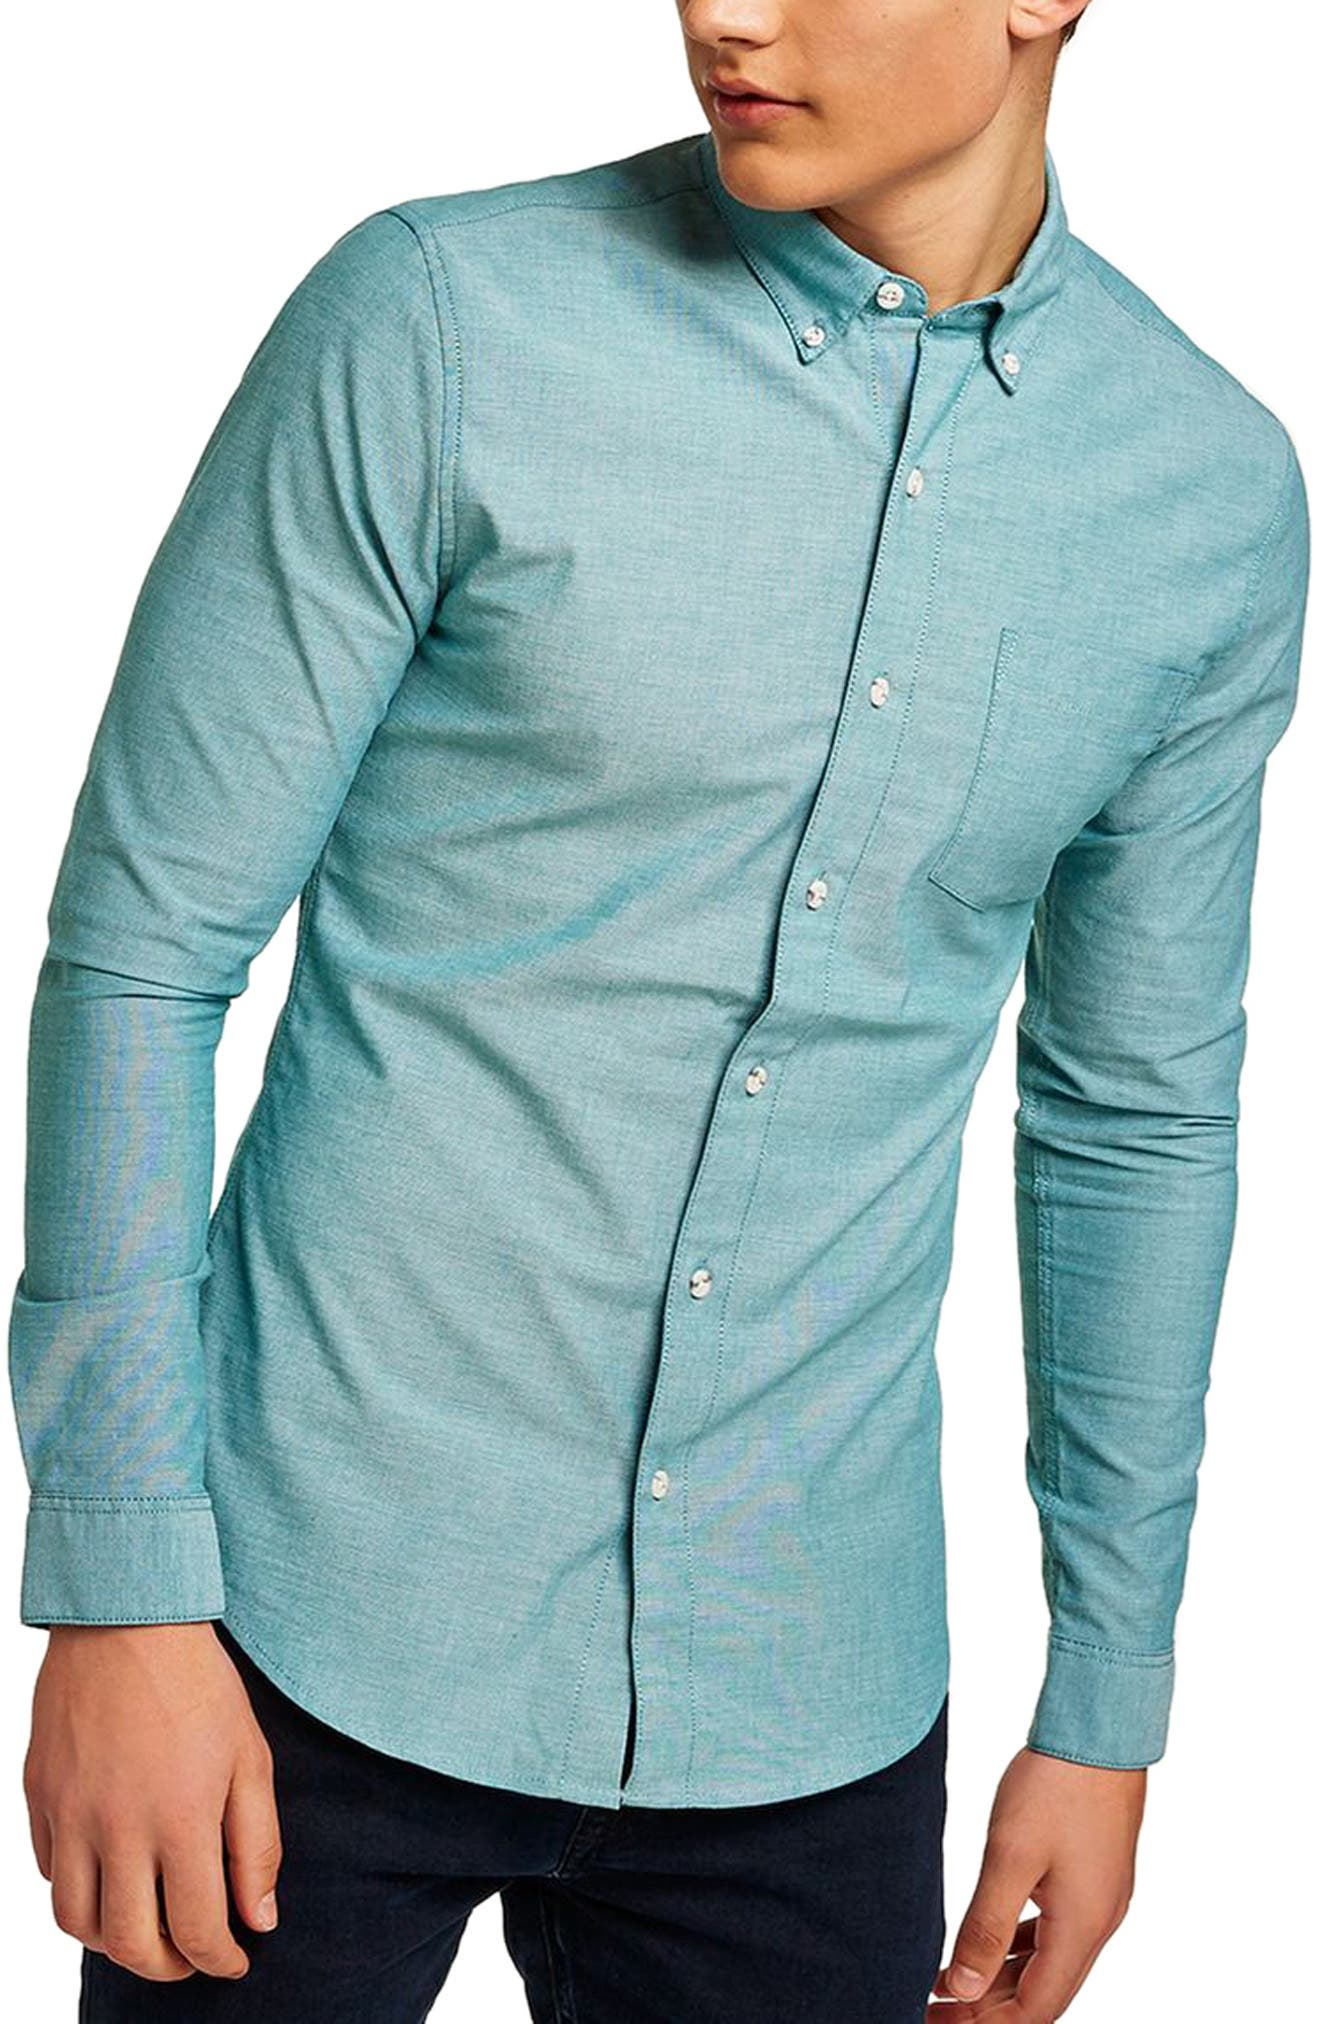 Muscle Fit Oxford Shirt,                             Main thumbnail 1, color,                             400